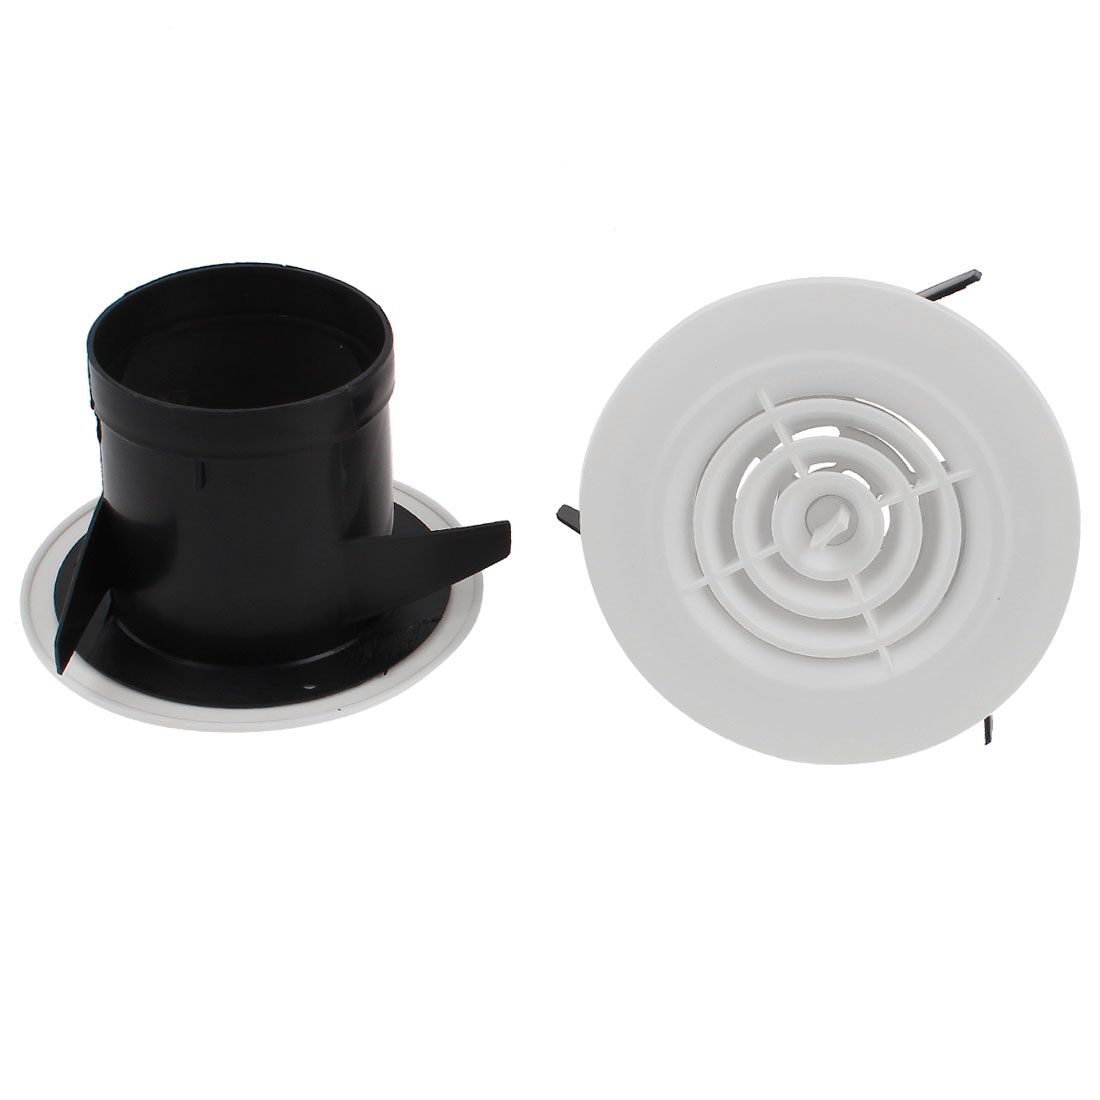 2pcs Black White Rotary 75mm Outer Dia Air Grilles Vent Valve for Bathroom